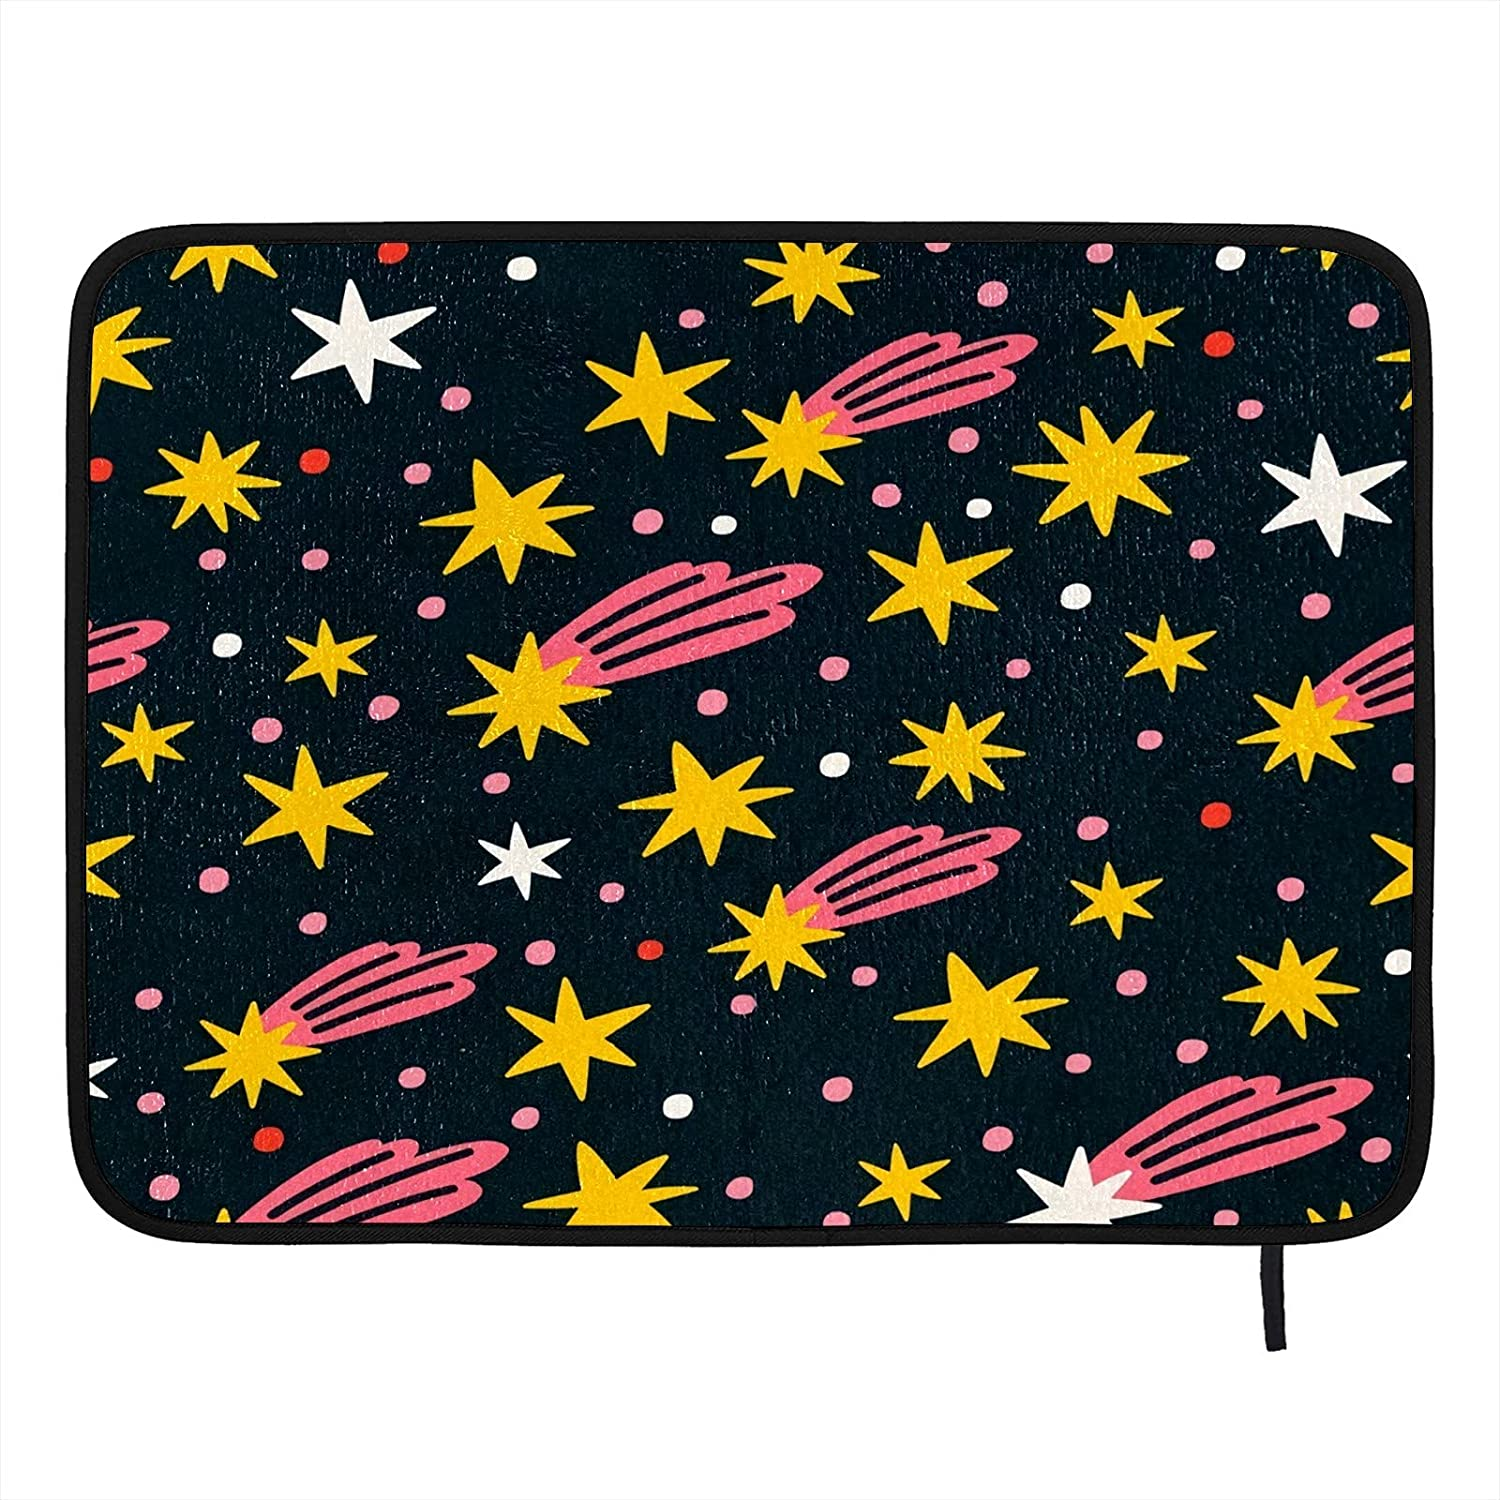 Absorbent Dish Drying Mat Night Sky Stars Kitchen Counter Mat Protector Heat Resistant Drying Pad Protector Suitable for Kitchen Sink Dining Table decor 24x18 inch